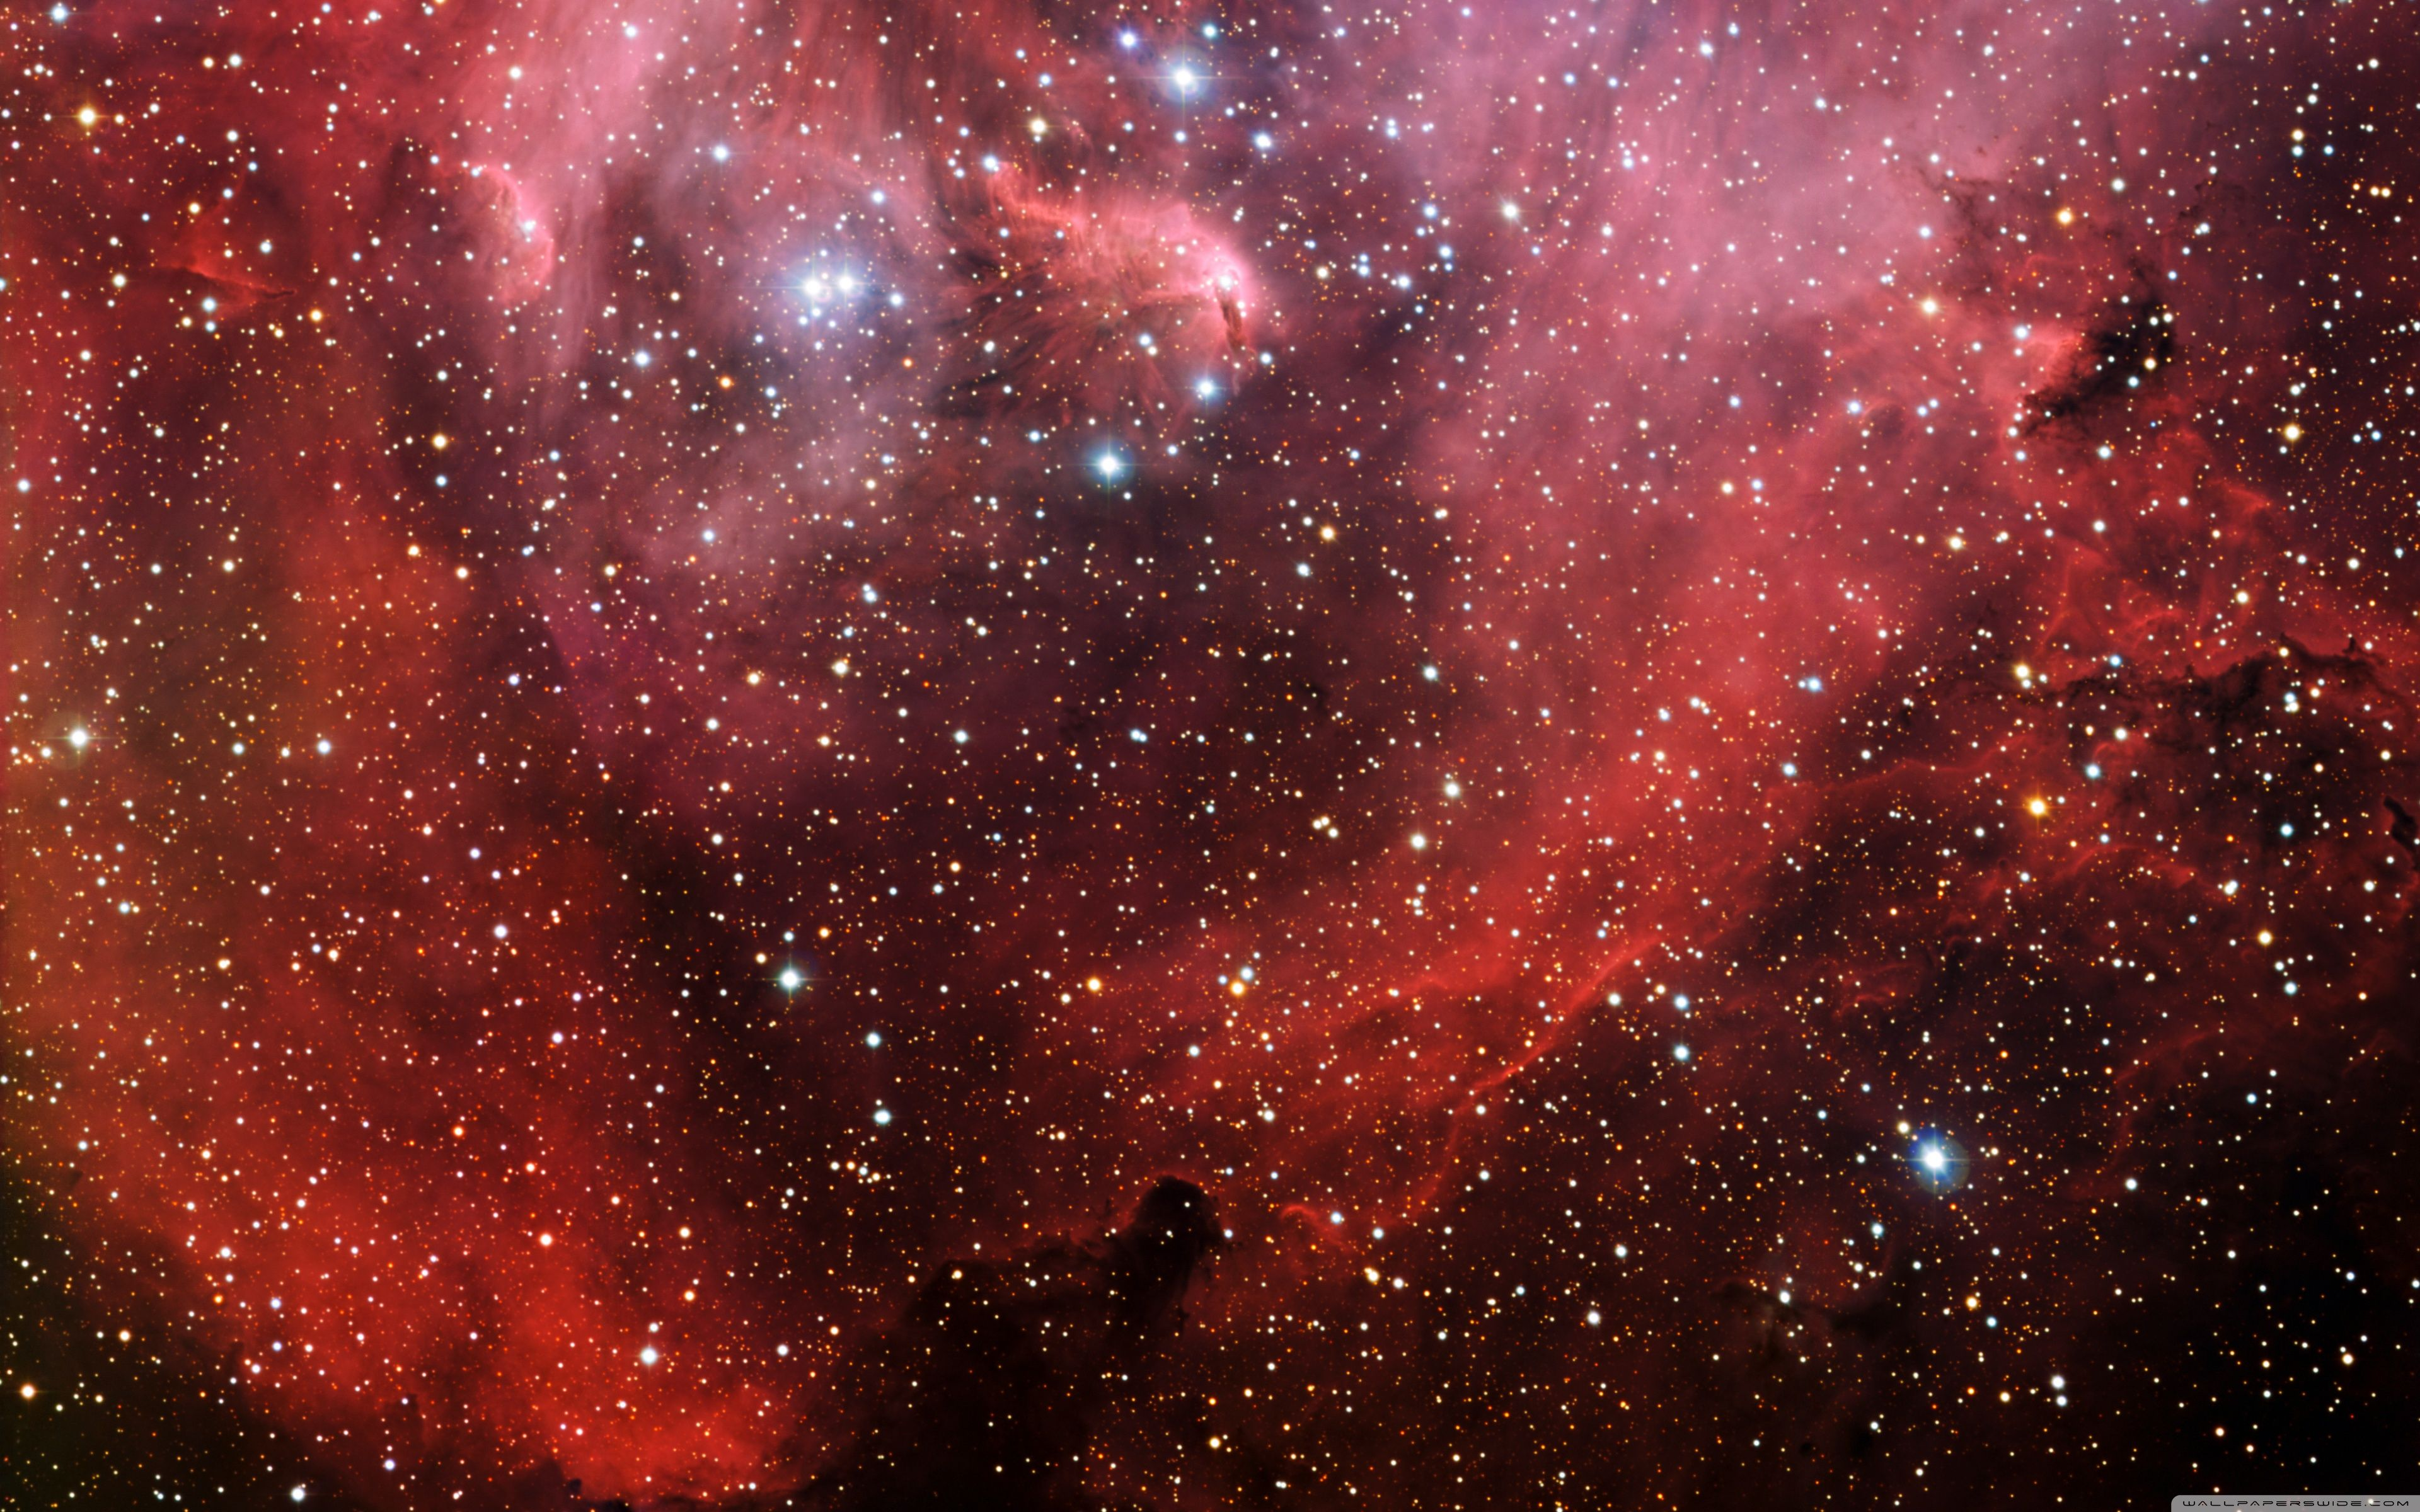 Other Wallpaper Space Star Wallpapers Widescreen Beautiful